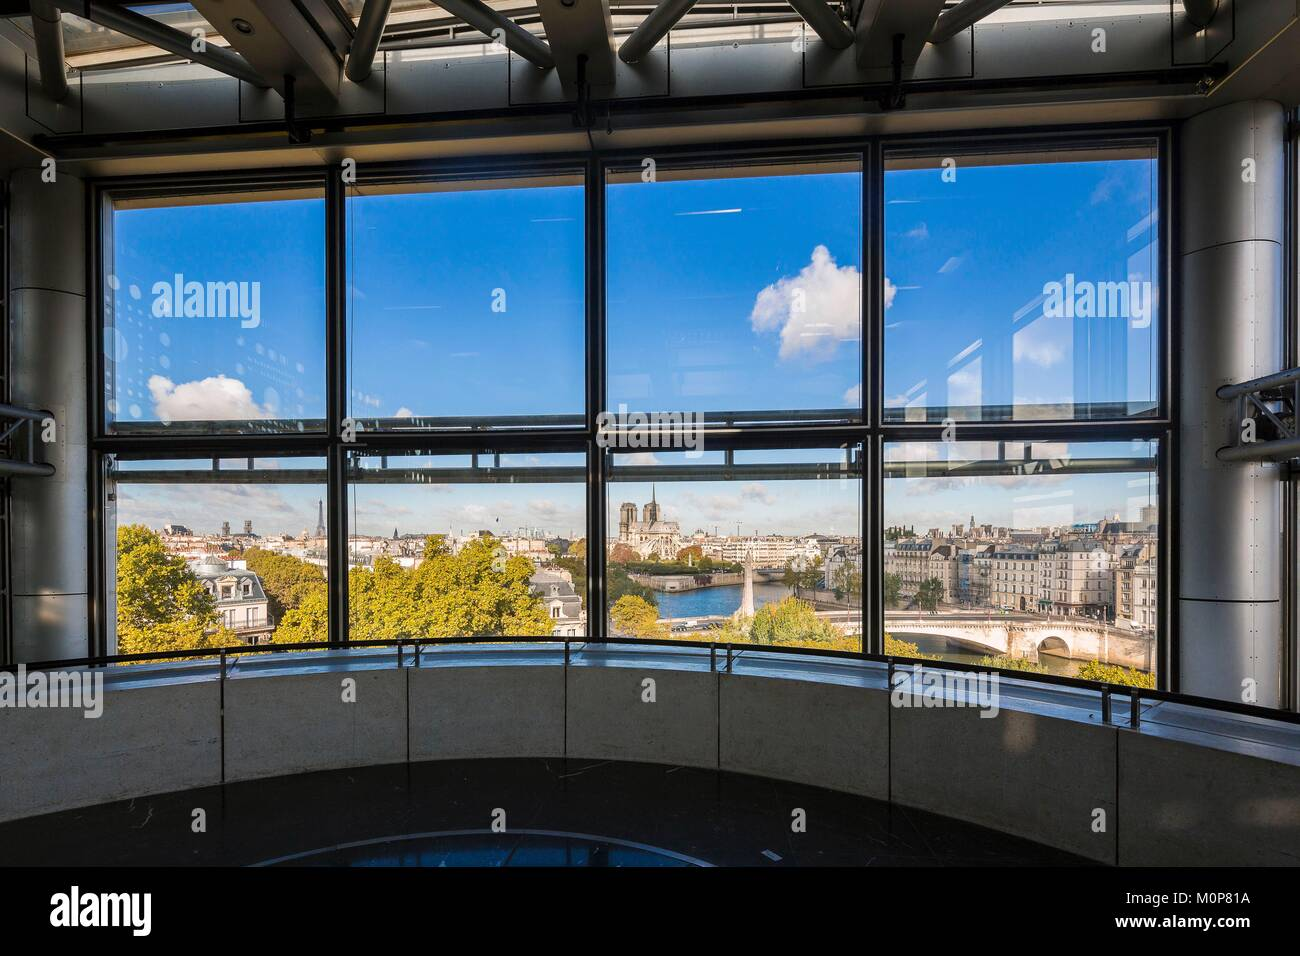 France,Paris,Institut du Monde Arabe (IMA),designed by the architects Jean Nouvel and Architecture-Studio,conference - Stock Image